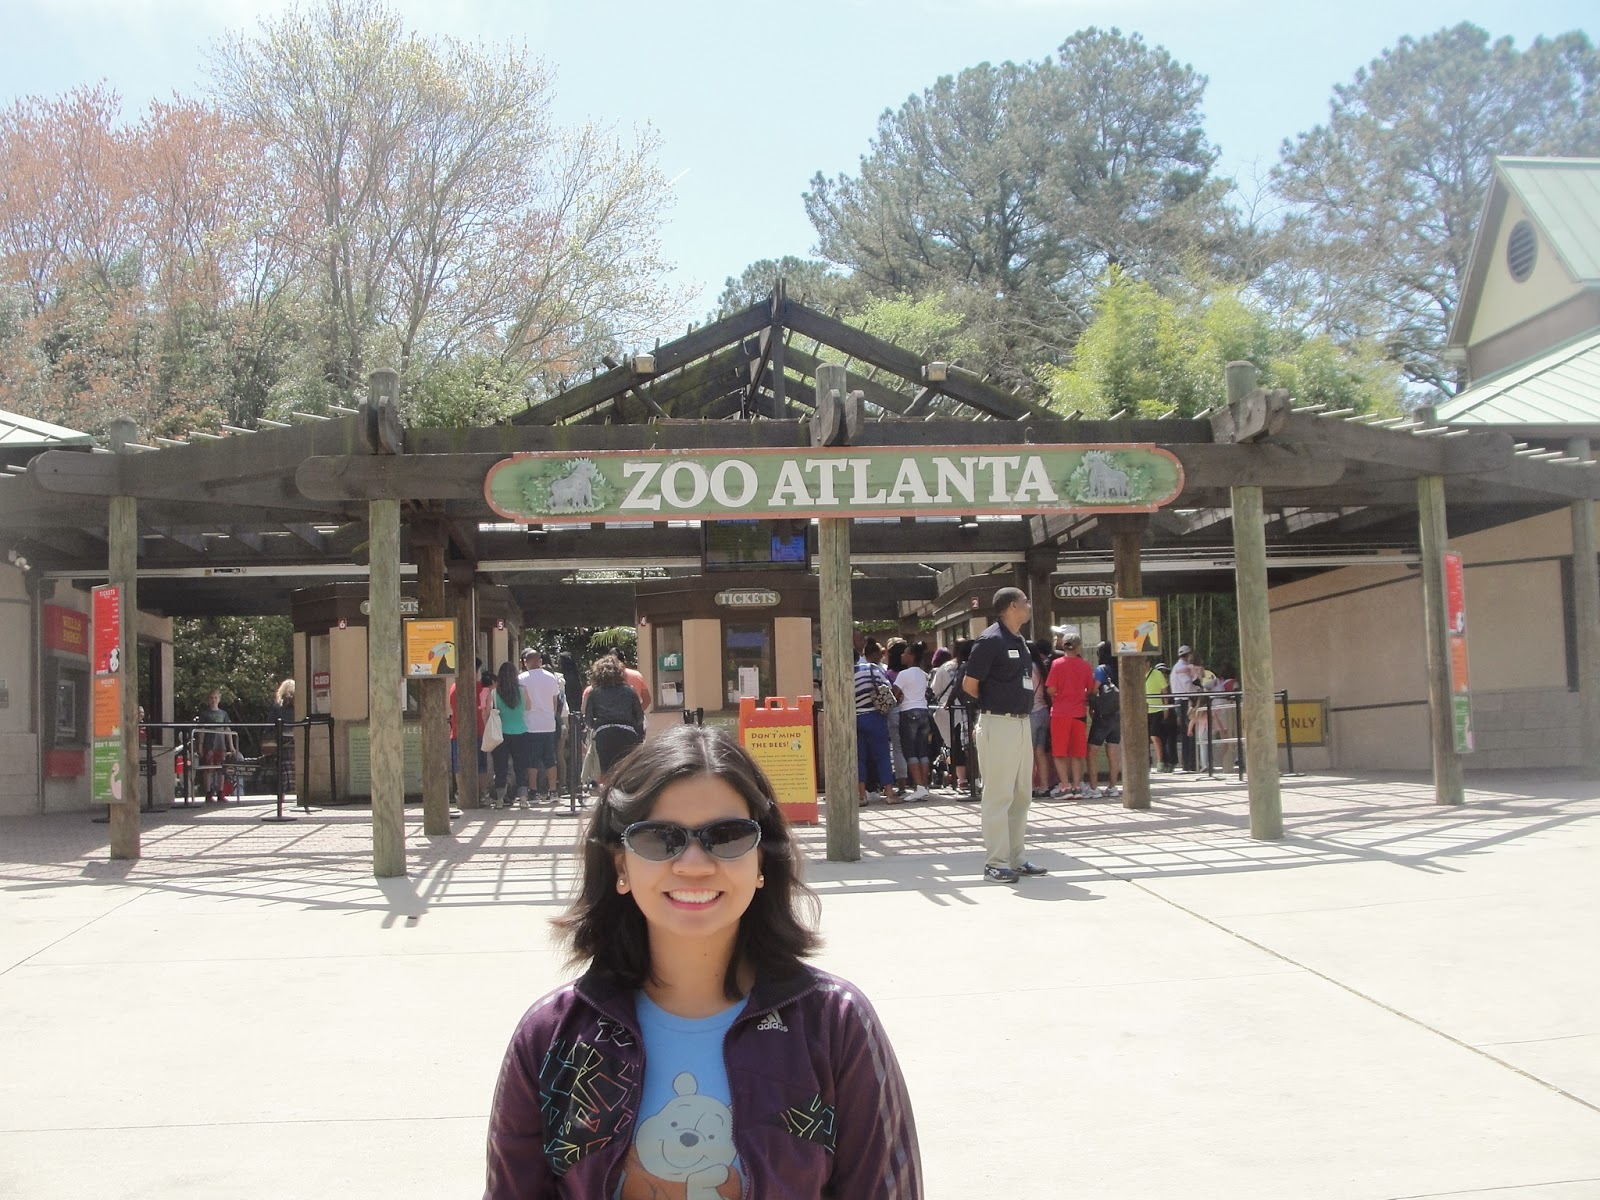 Zoo Atlanta by the fickle fan